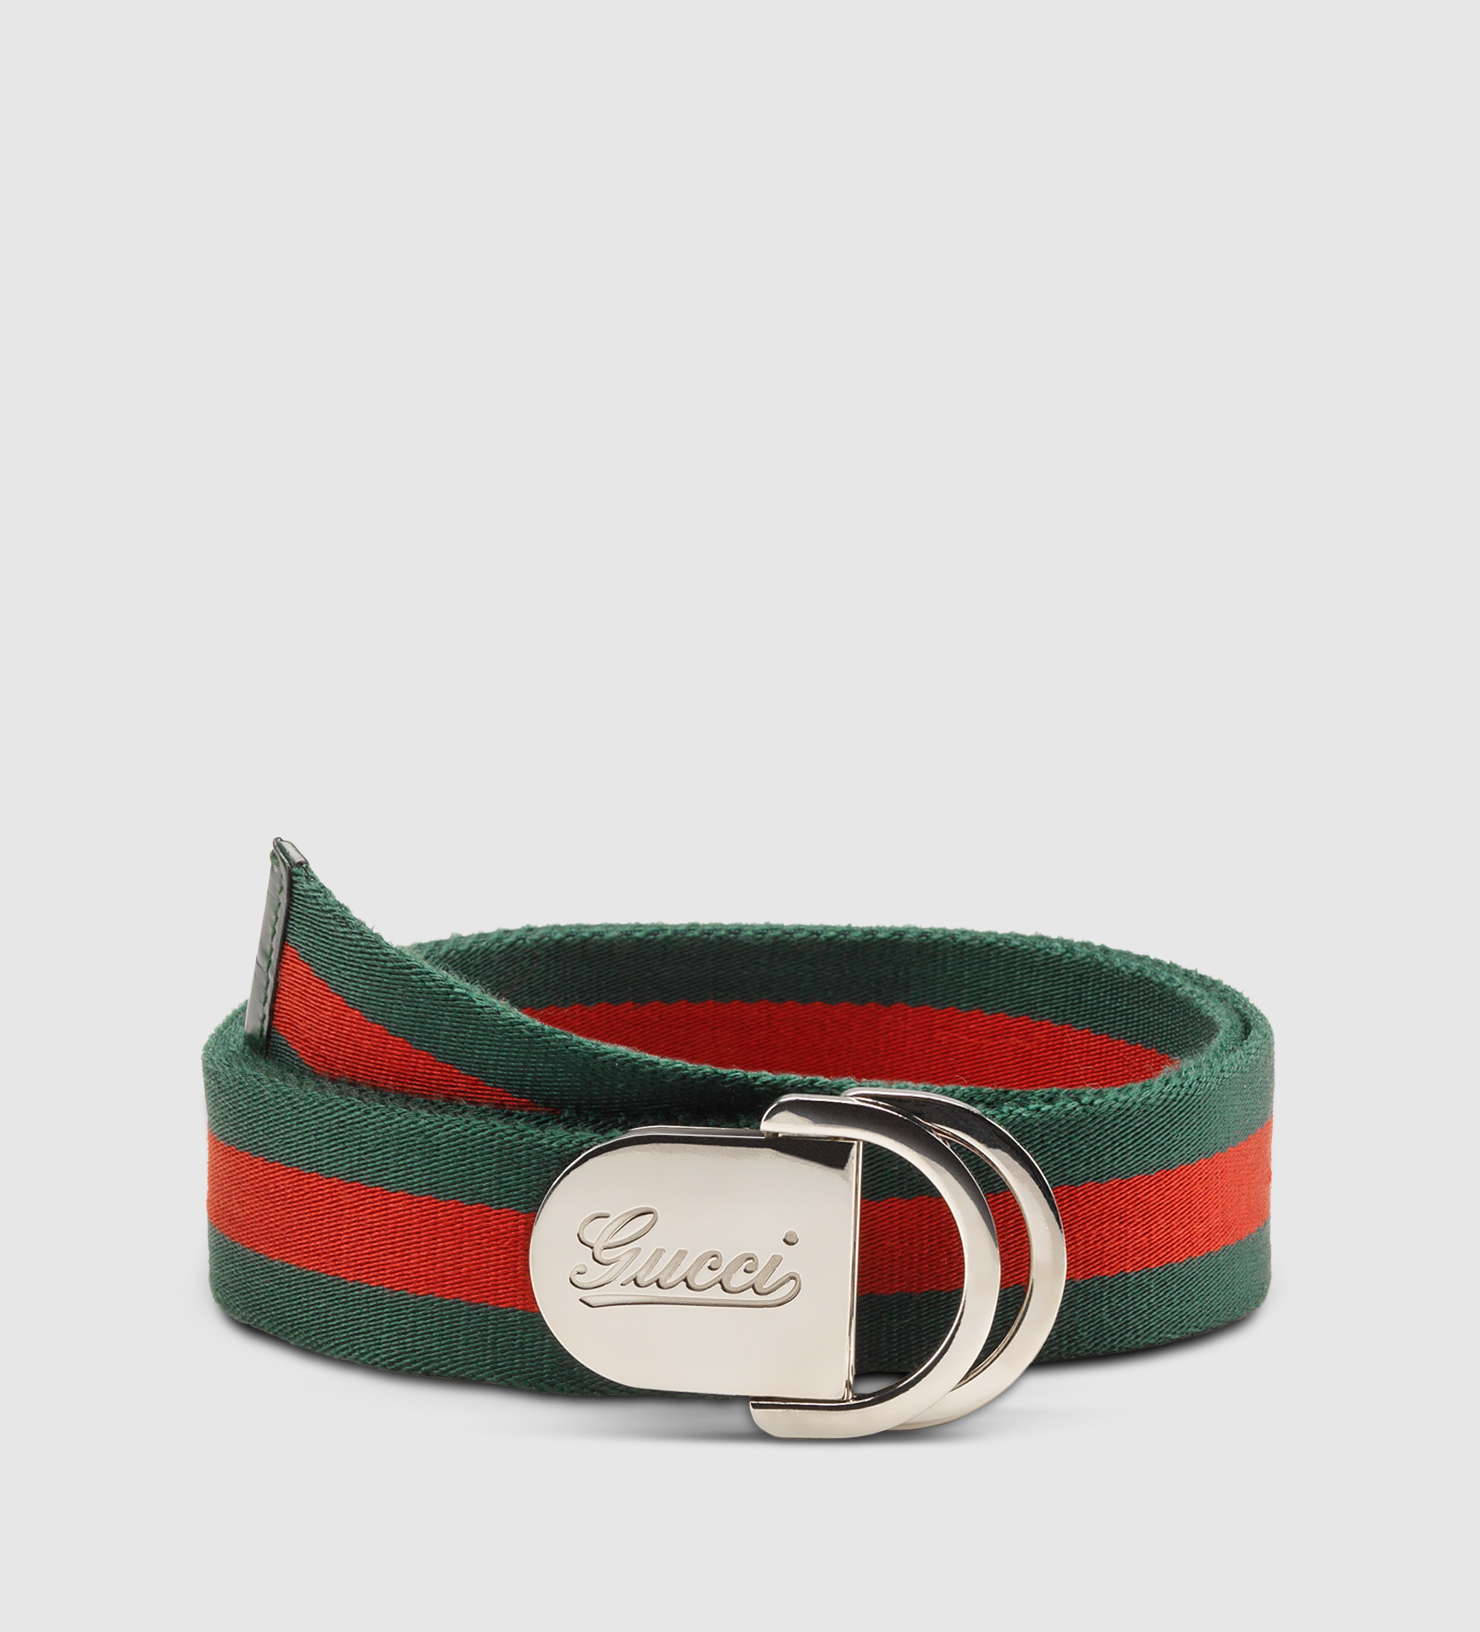 508f6895e7a Gucci Web Belt With Signature Buckle in Green for Men - Lyst